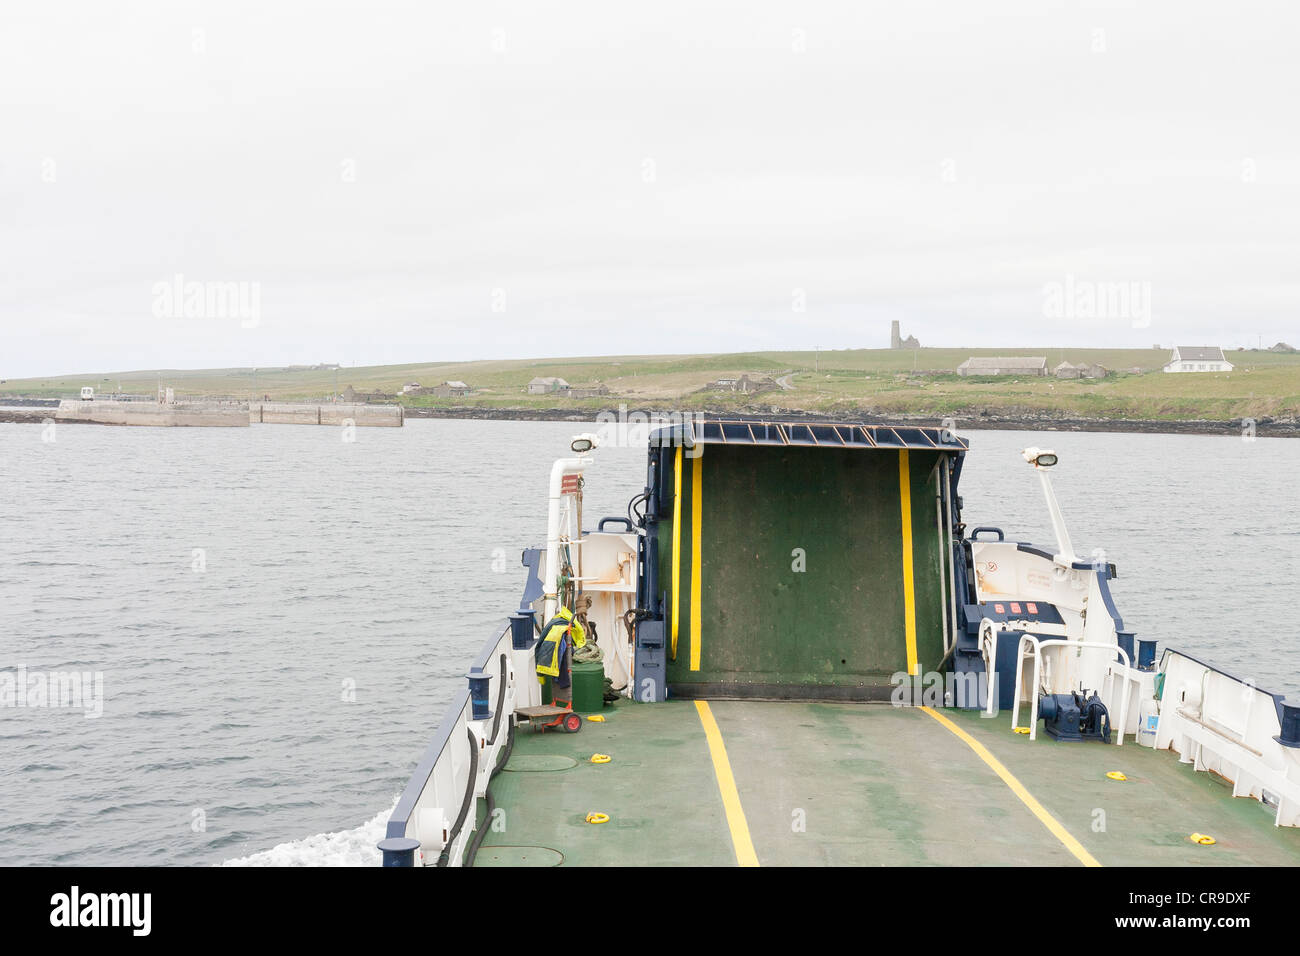 The Tingwall Rousay Ferry, Orkney Isles, Scotland - Stock Image